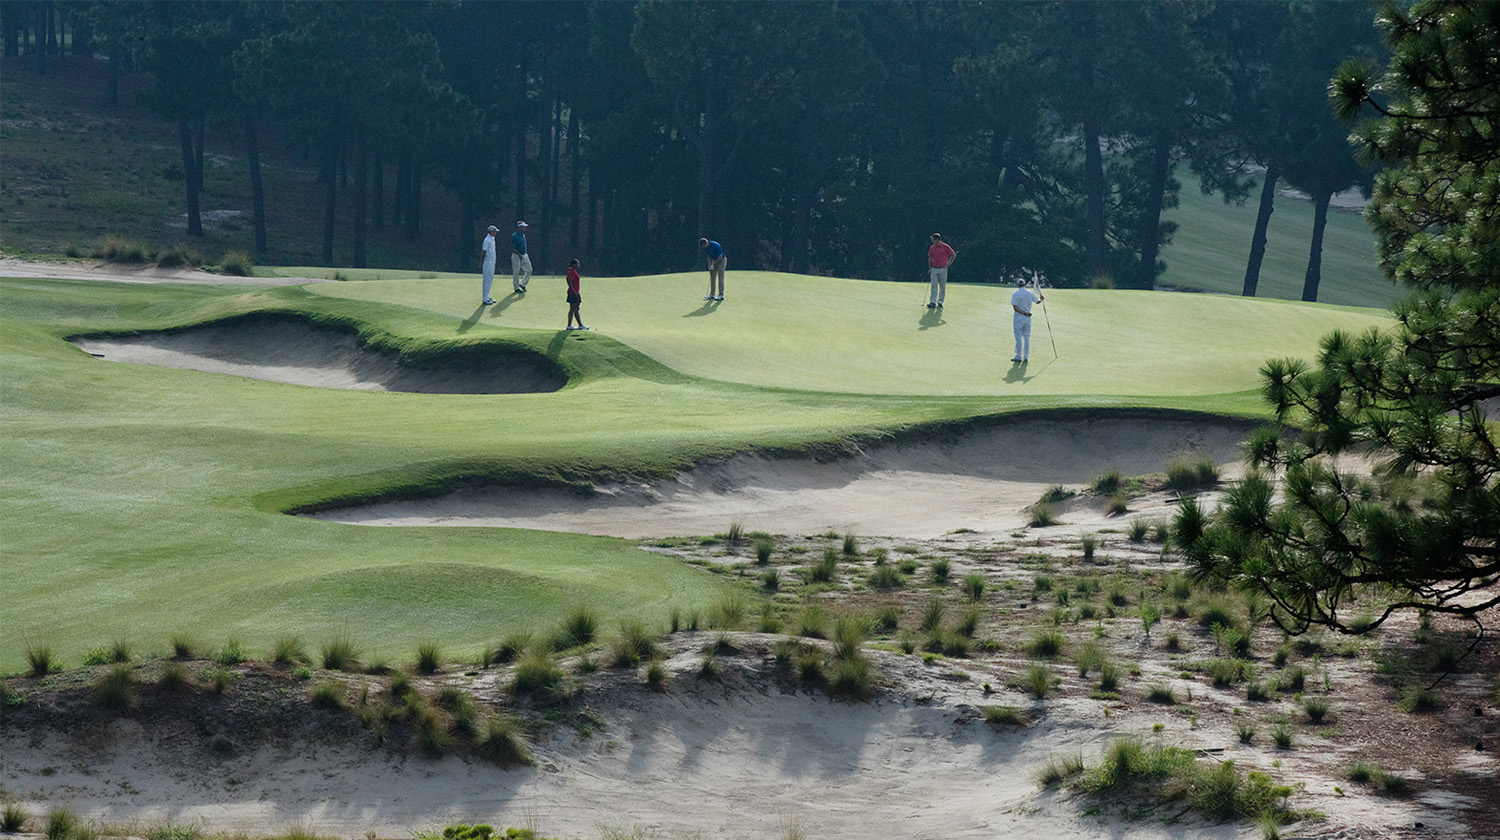 A group of golfers putt on Pinehurst Number 2's green